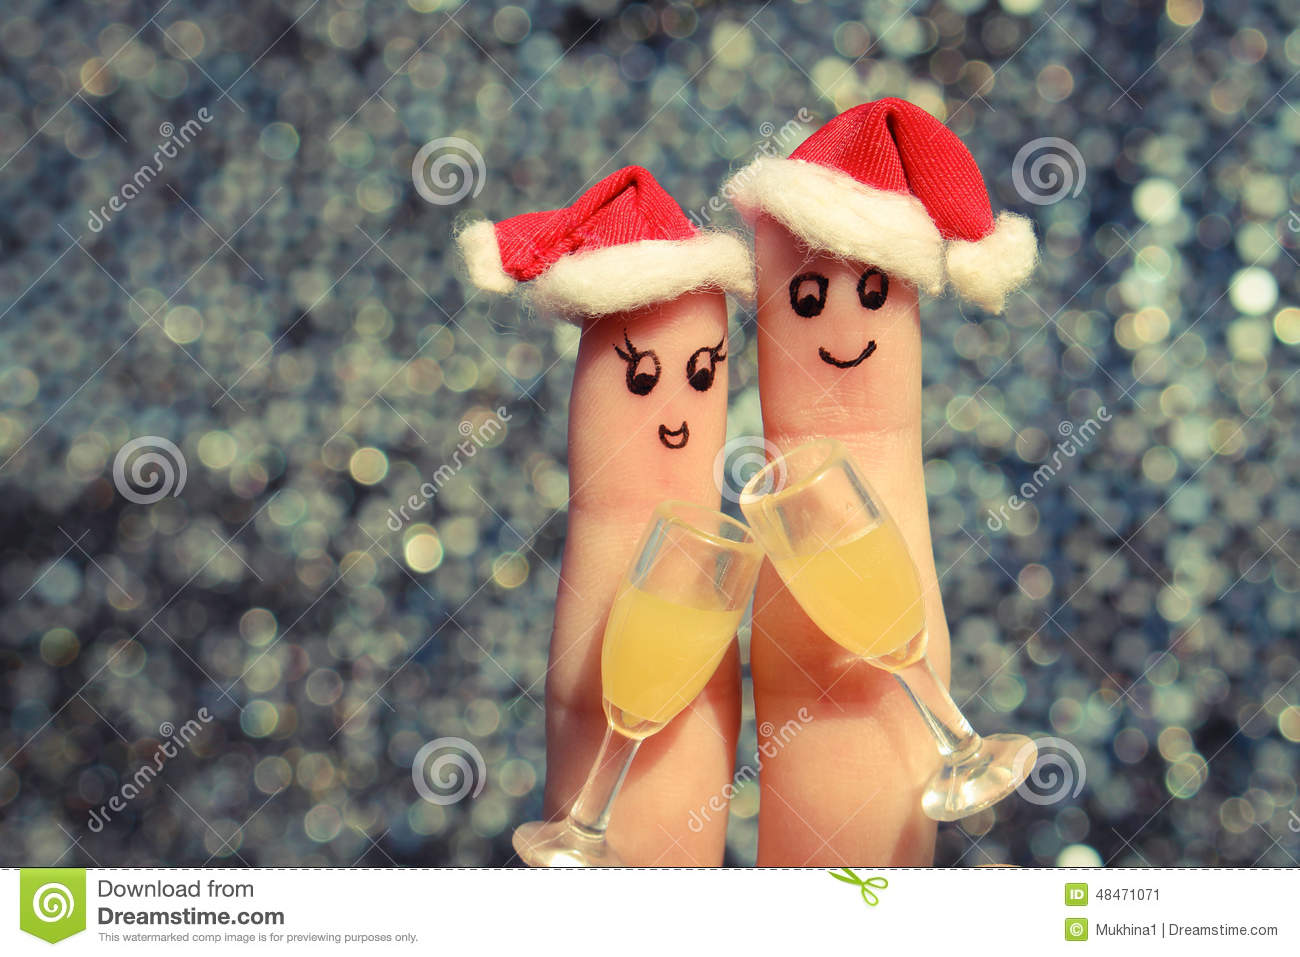 Finger art of a Happy couple. Couple making good cheer in the new year hats. Two glasses of champagne.